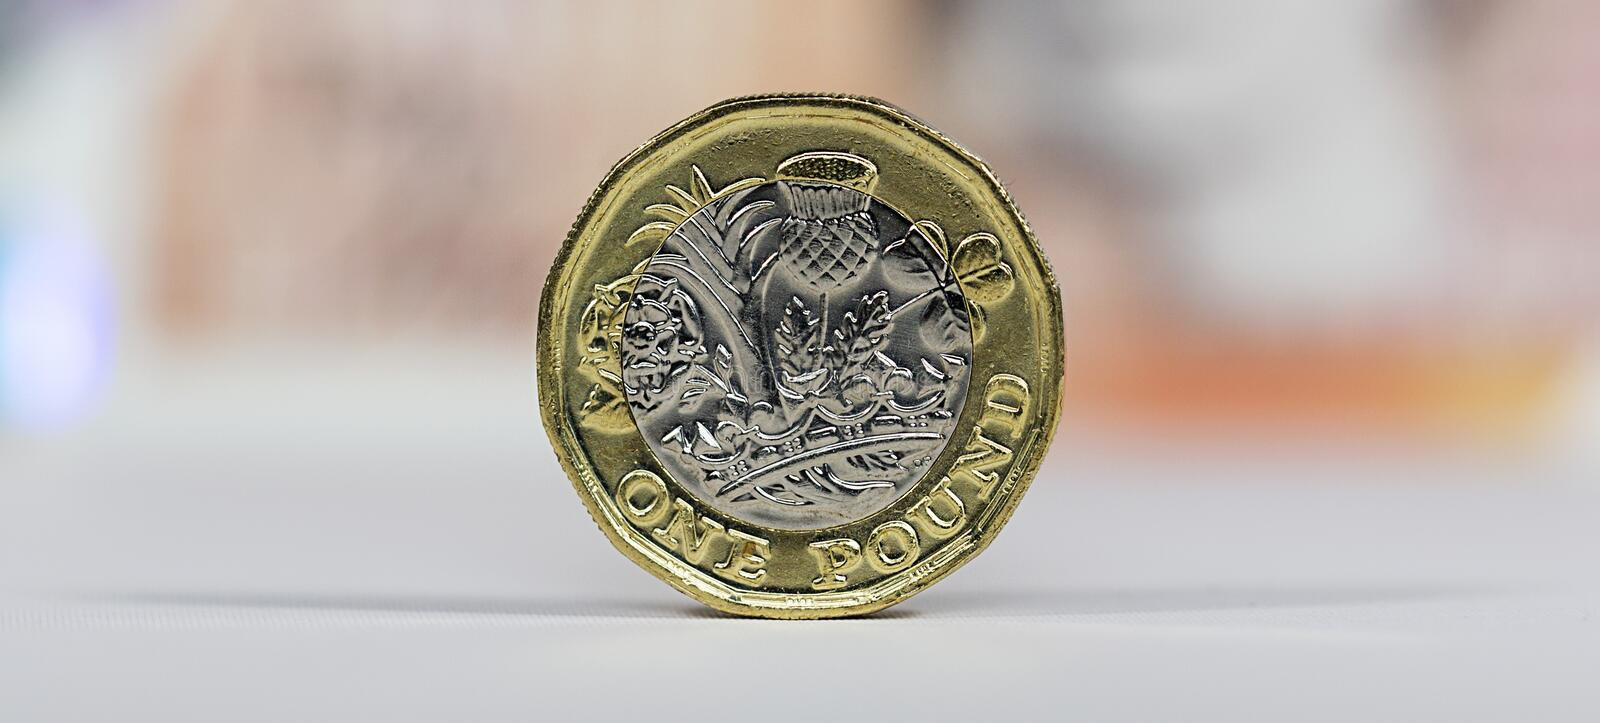 British Currency - New Polymer Ten Pound Note. London, UK: January 03, 2017: British one pound coin with a ten pound note background in a panoramic format. Both royalty free stock photos